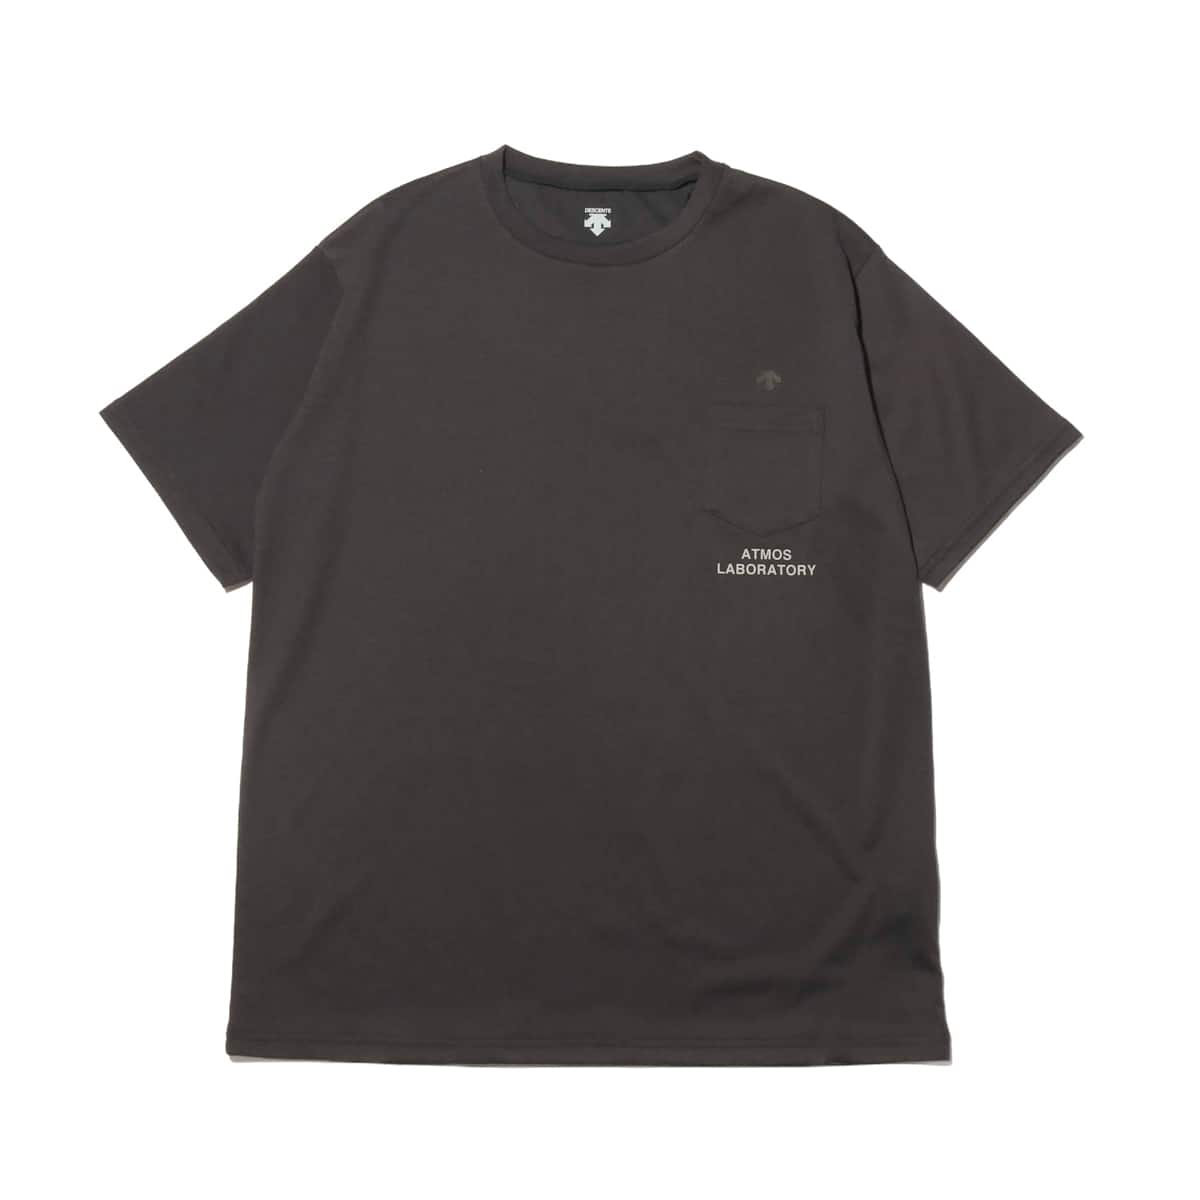 DESCENTE ddd X ATMOS LAB POCKET T-SHIRT BLACK 19SP-I_photo_large